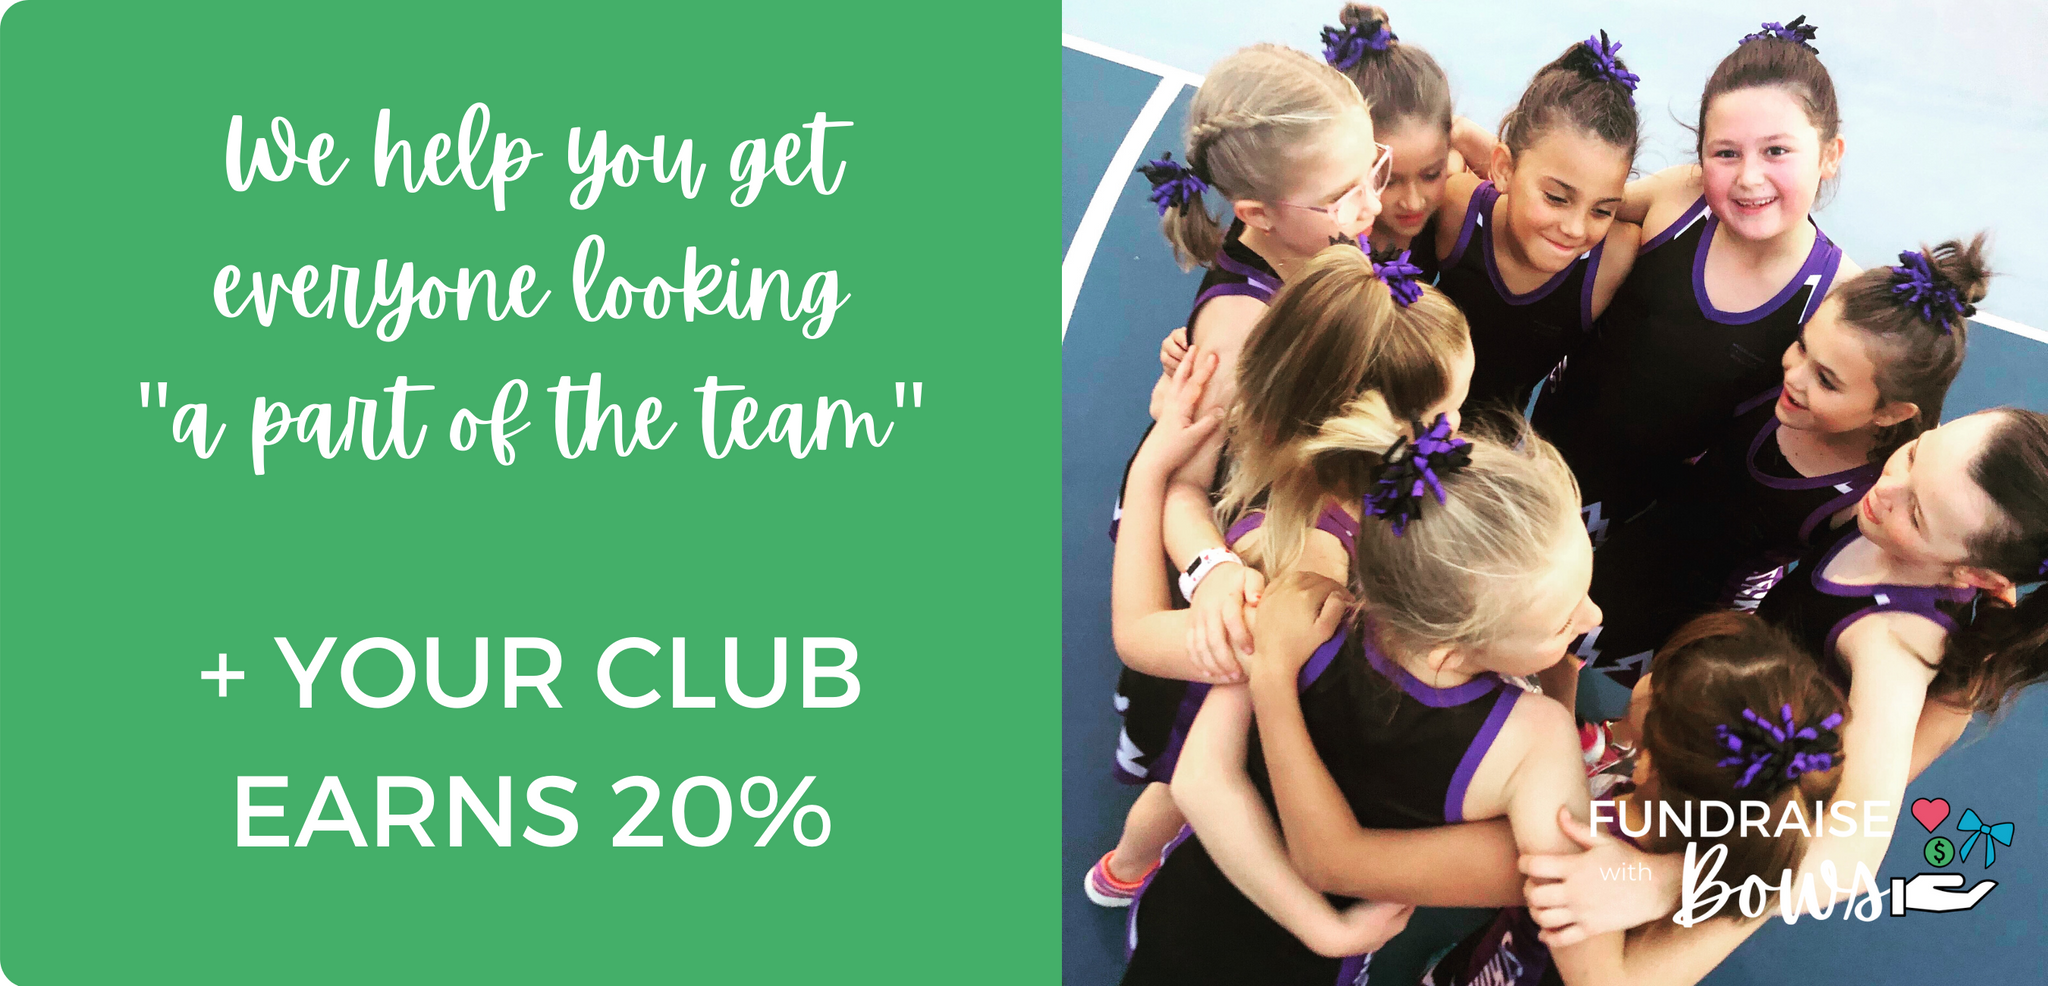 Be proud, be seen. Your colours, your team. The Fundraise with bows program sends 20% back to your team when purchases are made with your code.